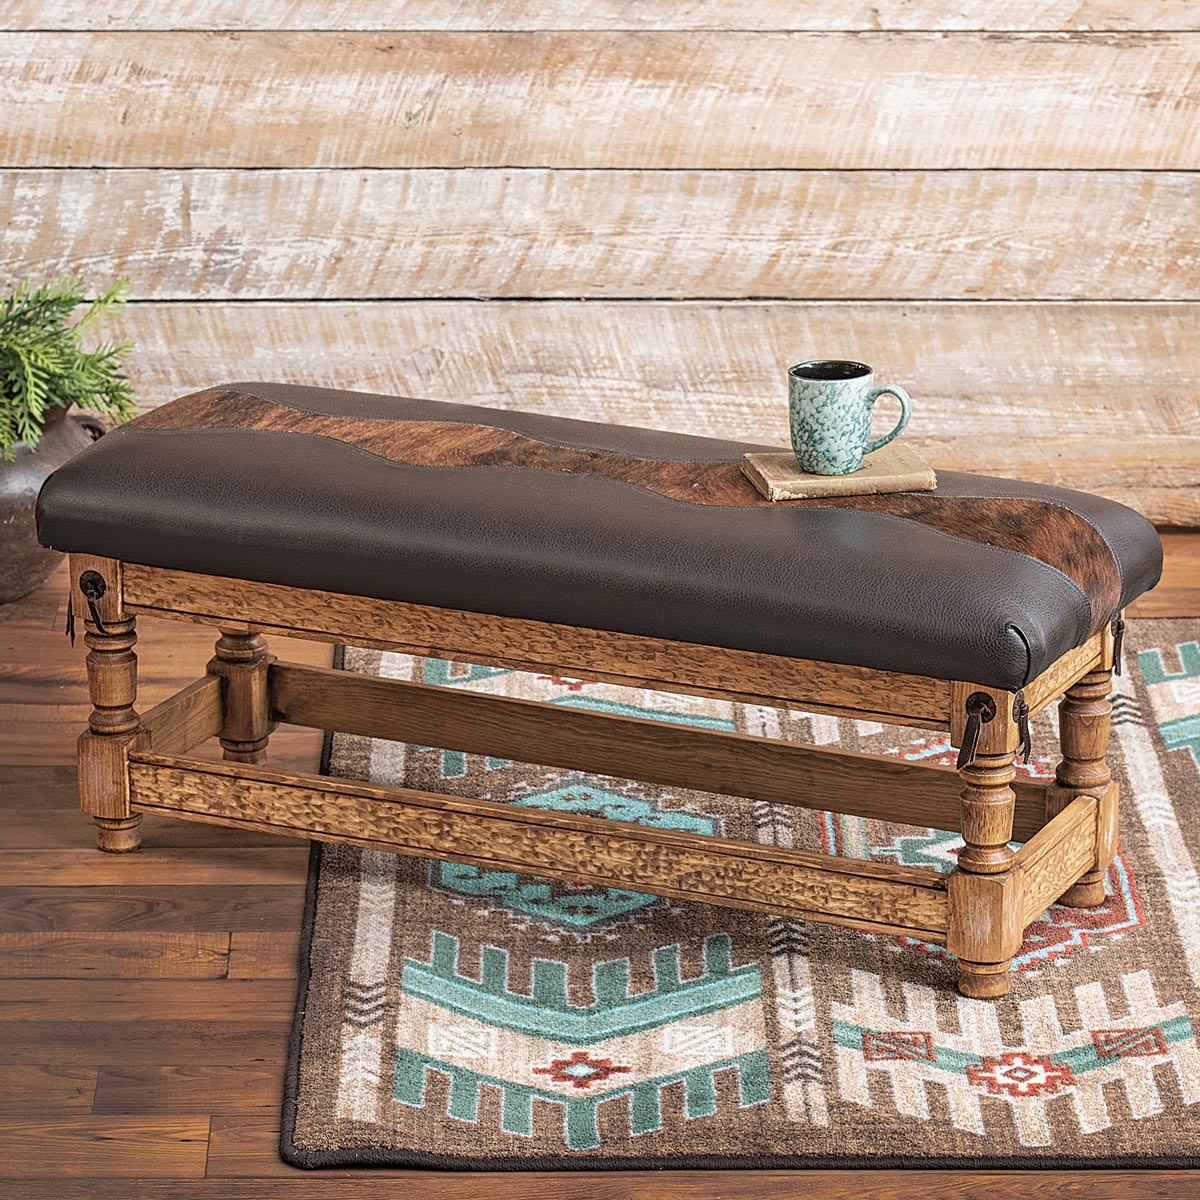 Lone Star Western Decor Chaps bench - small